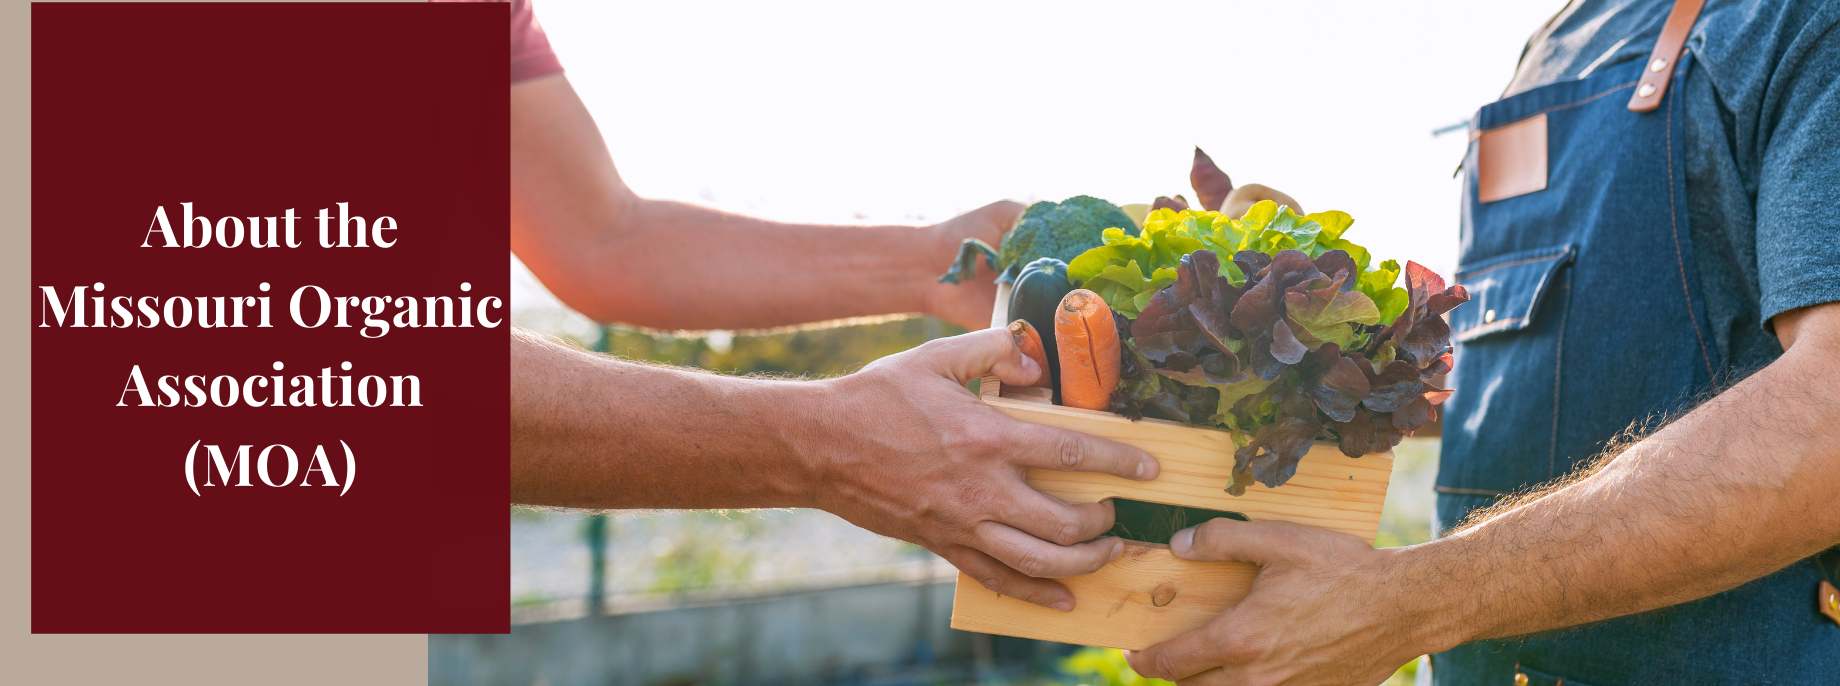 Learn about the Missouri Organic Association